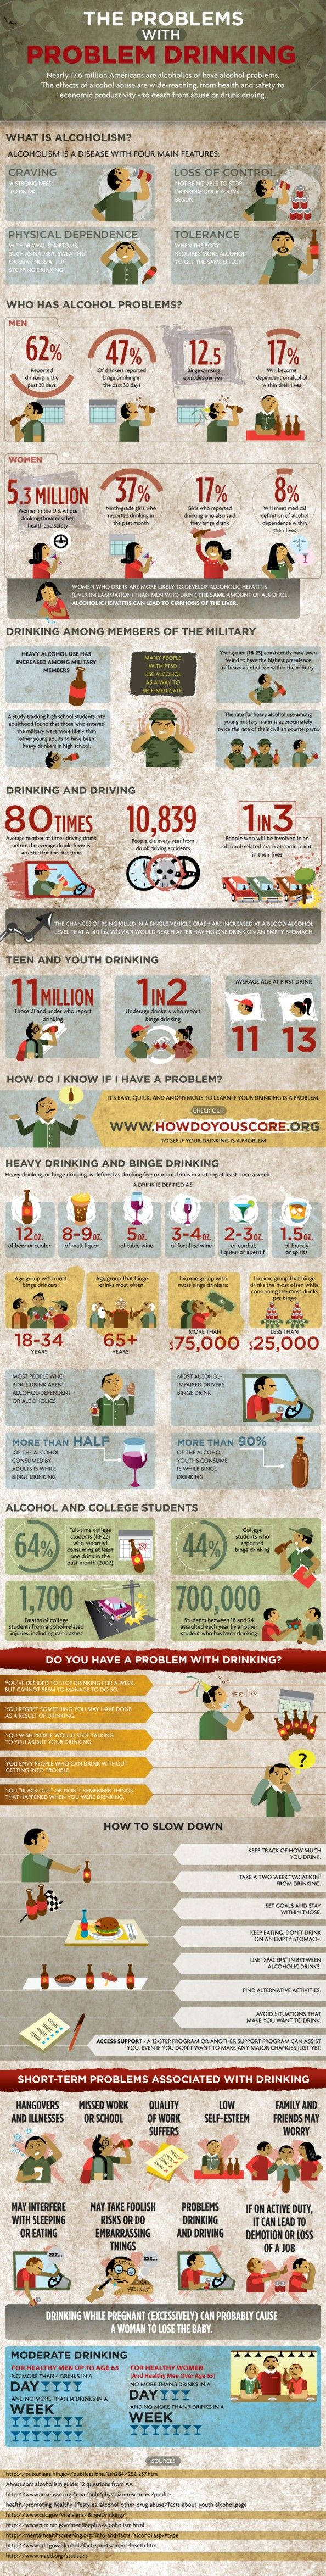 Am I an Alcoholic? – Alcohol Abuse Facts | Alcohol Abuse | www.hawaiianrecovery.com  | #recovery #alcohol #sober |